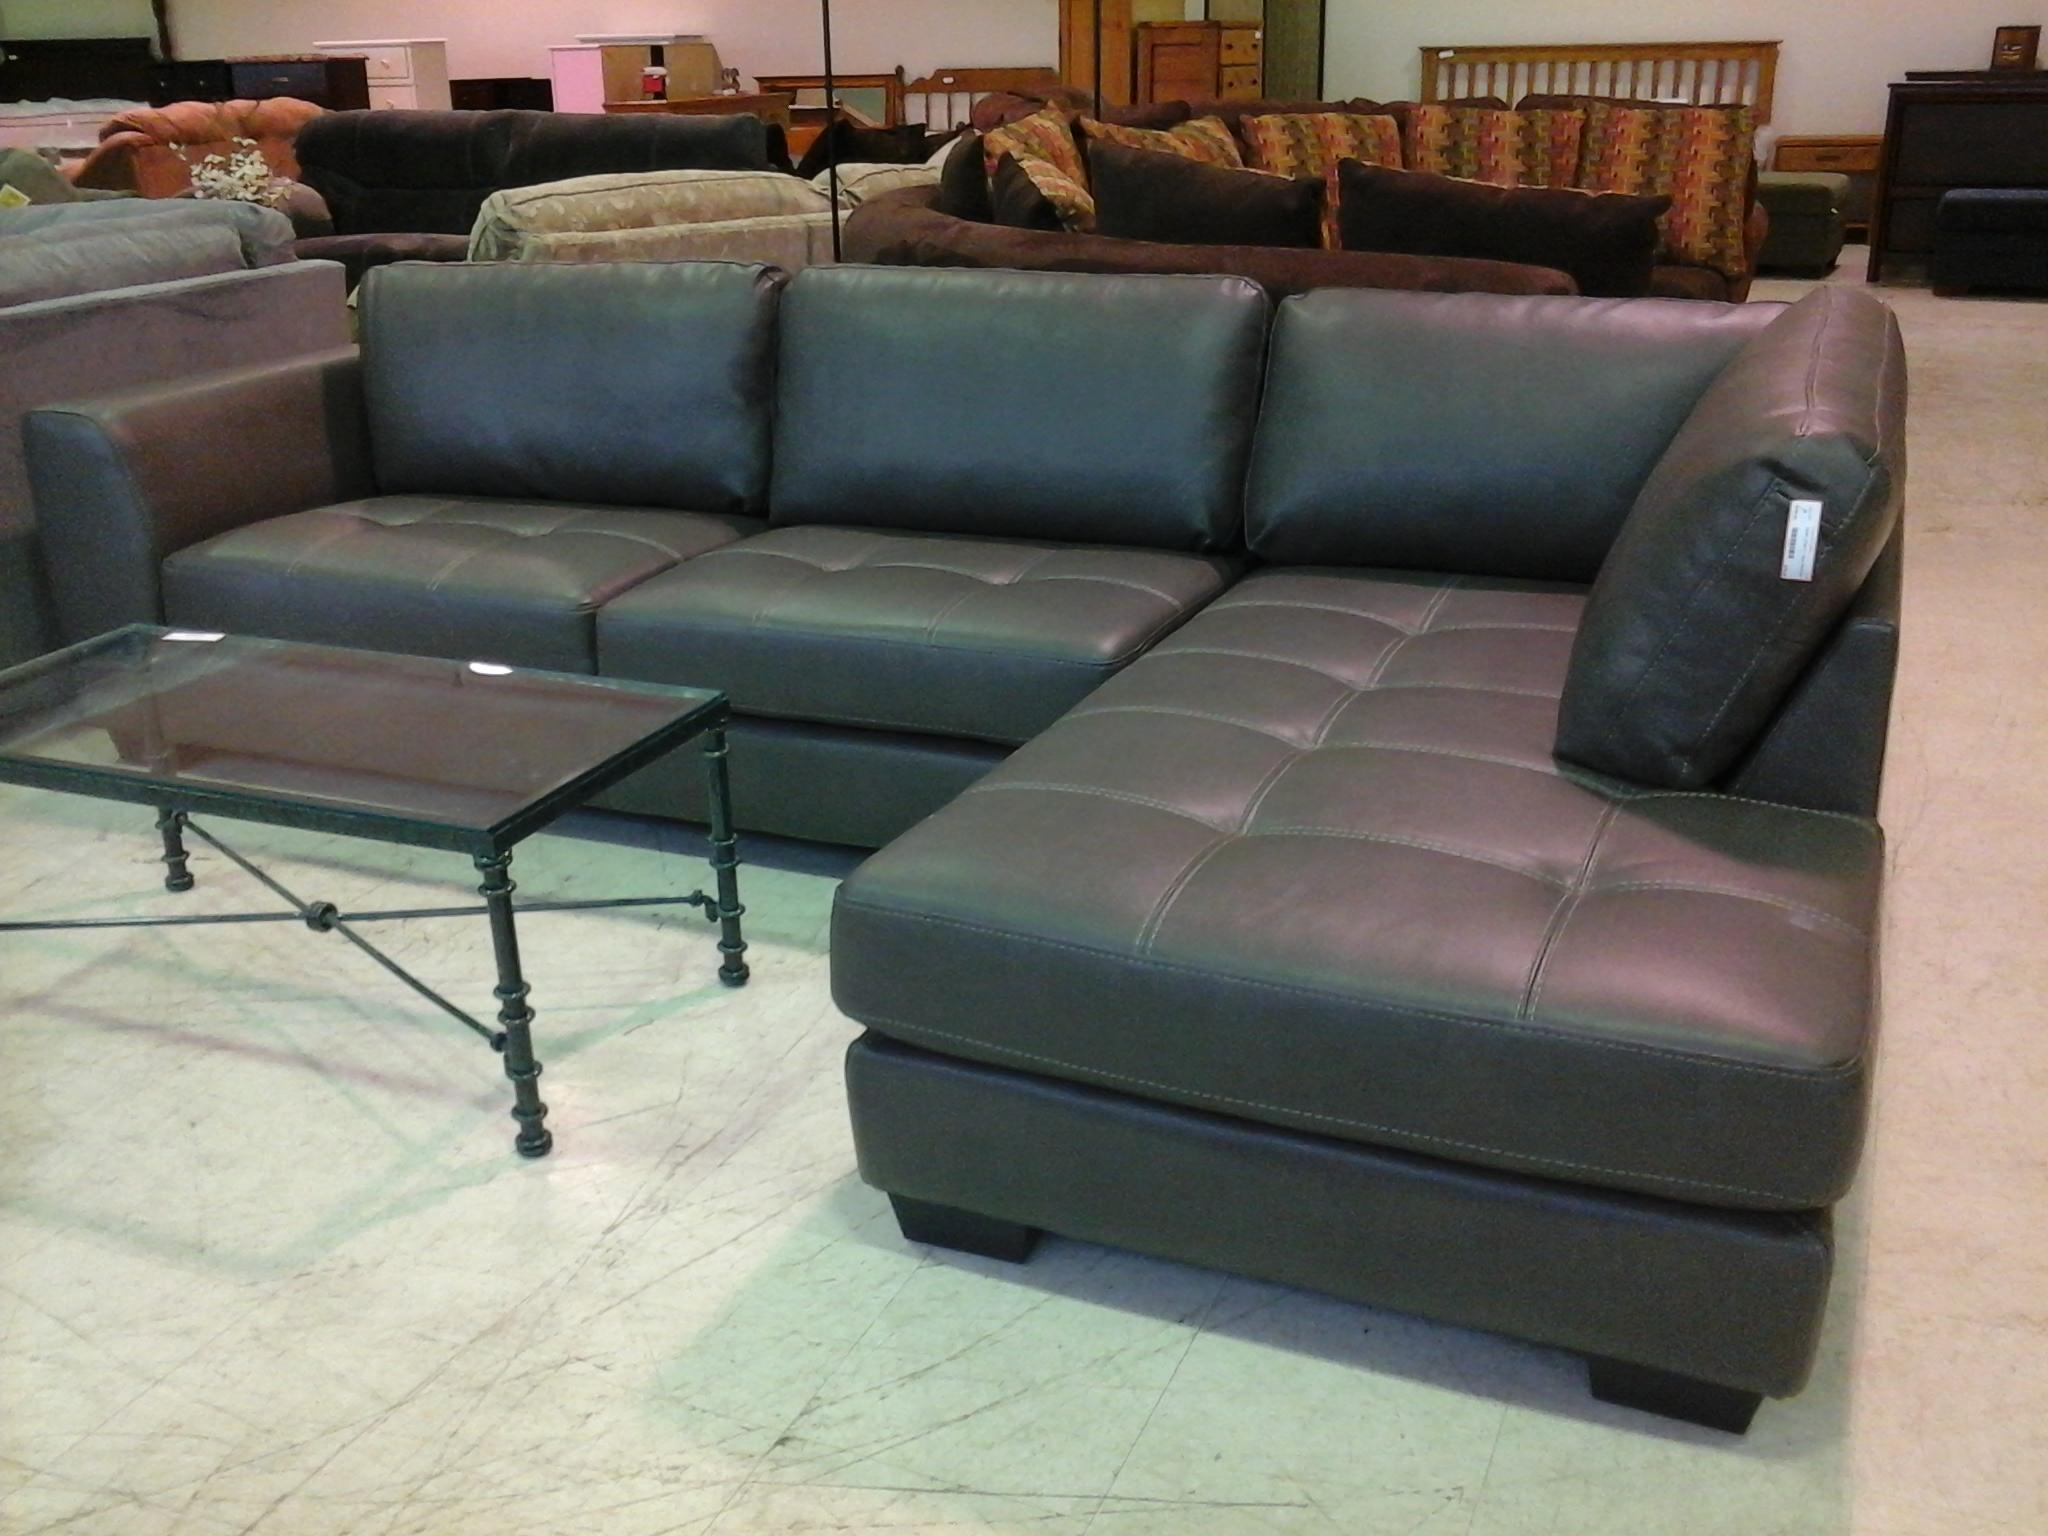 Charcoal Grey Sofa With Chaise | Tehranmix Decoration Pertaining To Charcoal Grey Sofas (View 7 of 20)